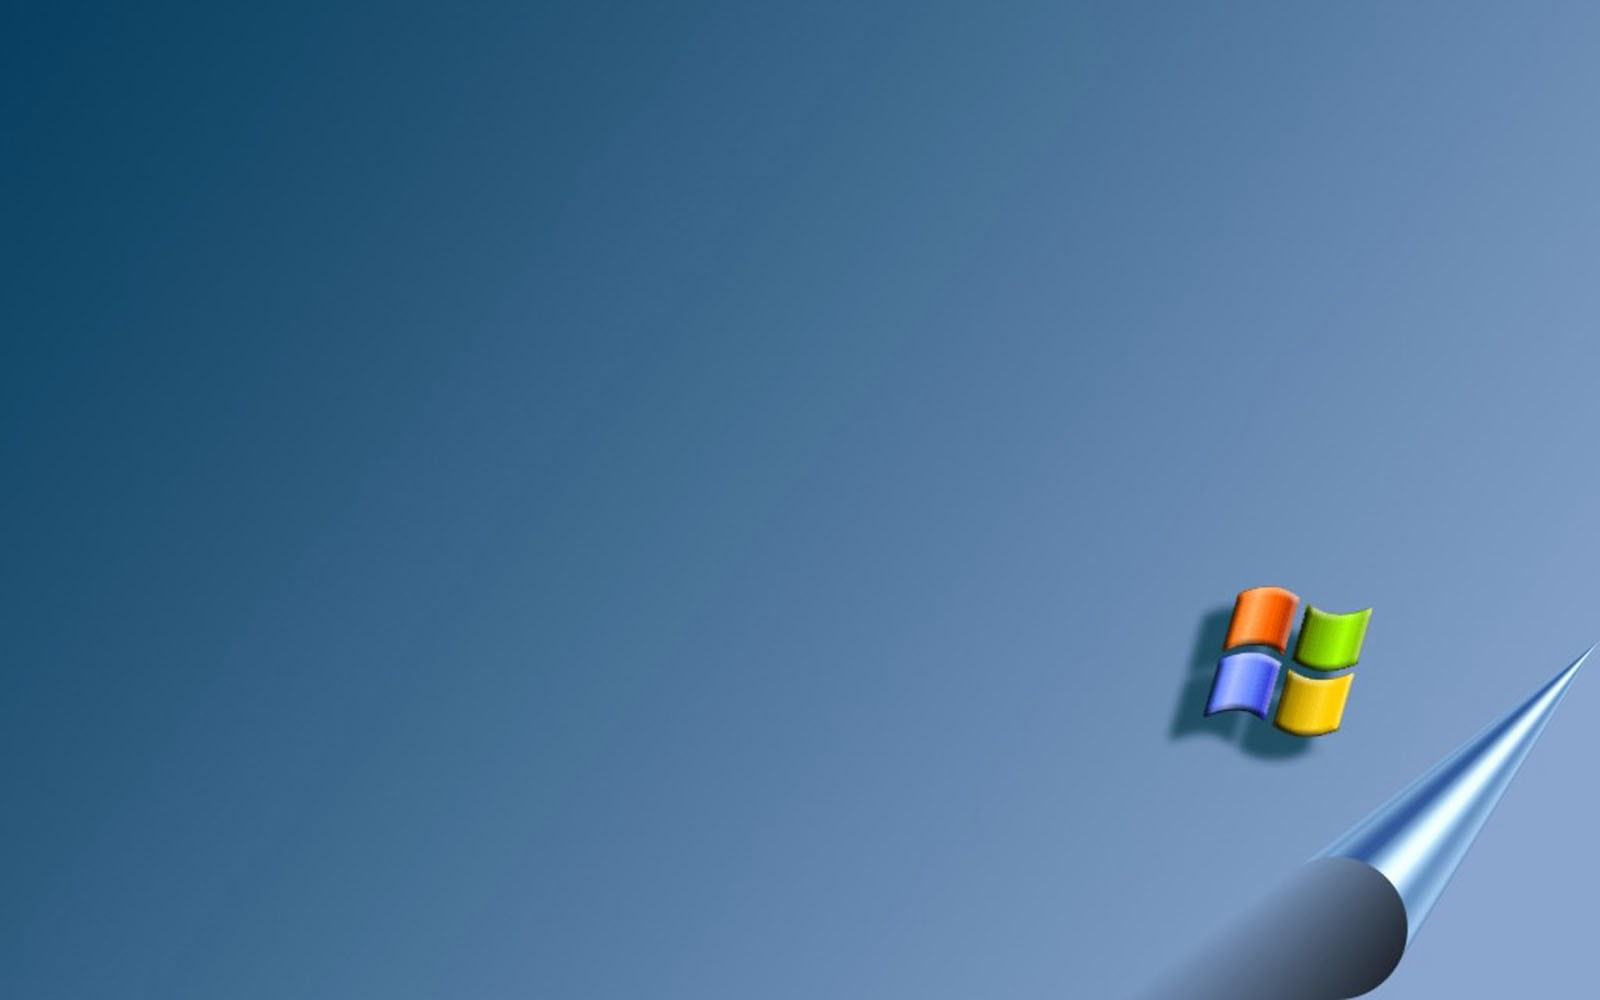 microsoft windows wallpapers by gifteddeviant - photo #41